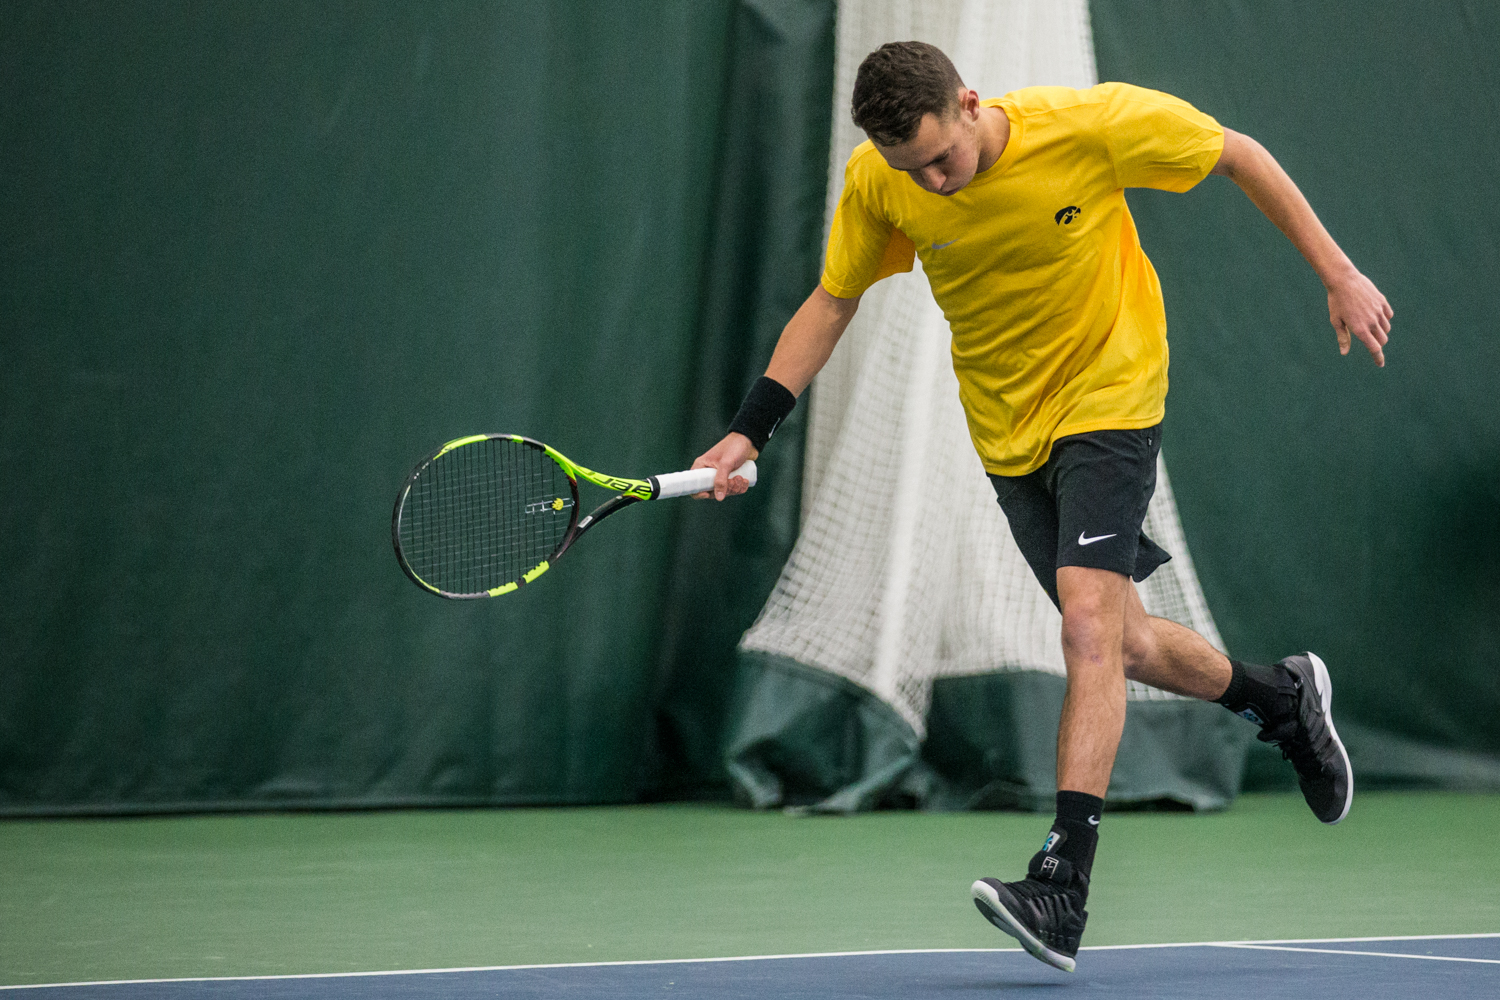 Iowa%27s+Kareem+Allaf+runs+down+a+ball+during+a+men%27s+tennis+matchup+between+Iowa+and+Butler+on+Sunday%2C+January+27%2C+2019.+The+Hawkeyes+defeated+the+Bulldogs%2C+5-2.